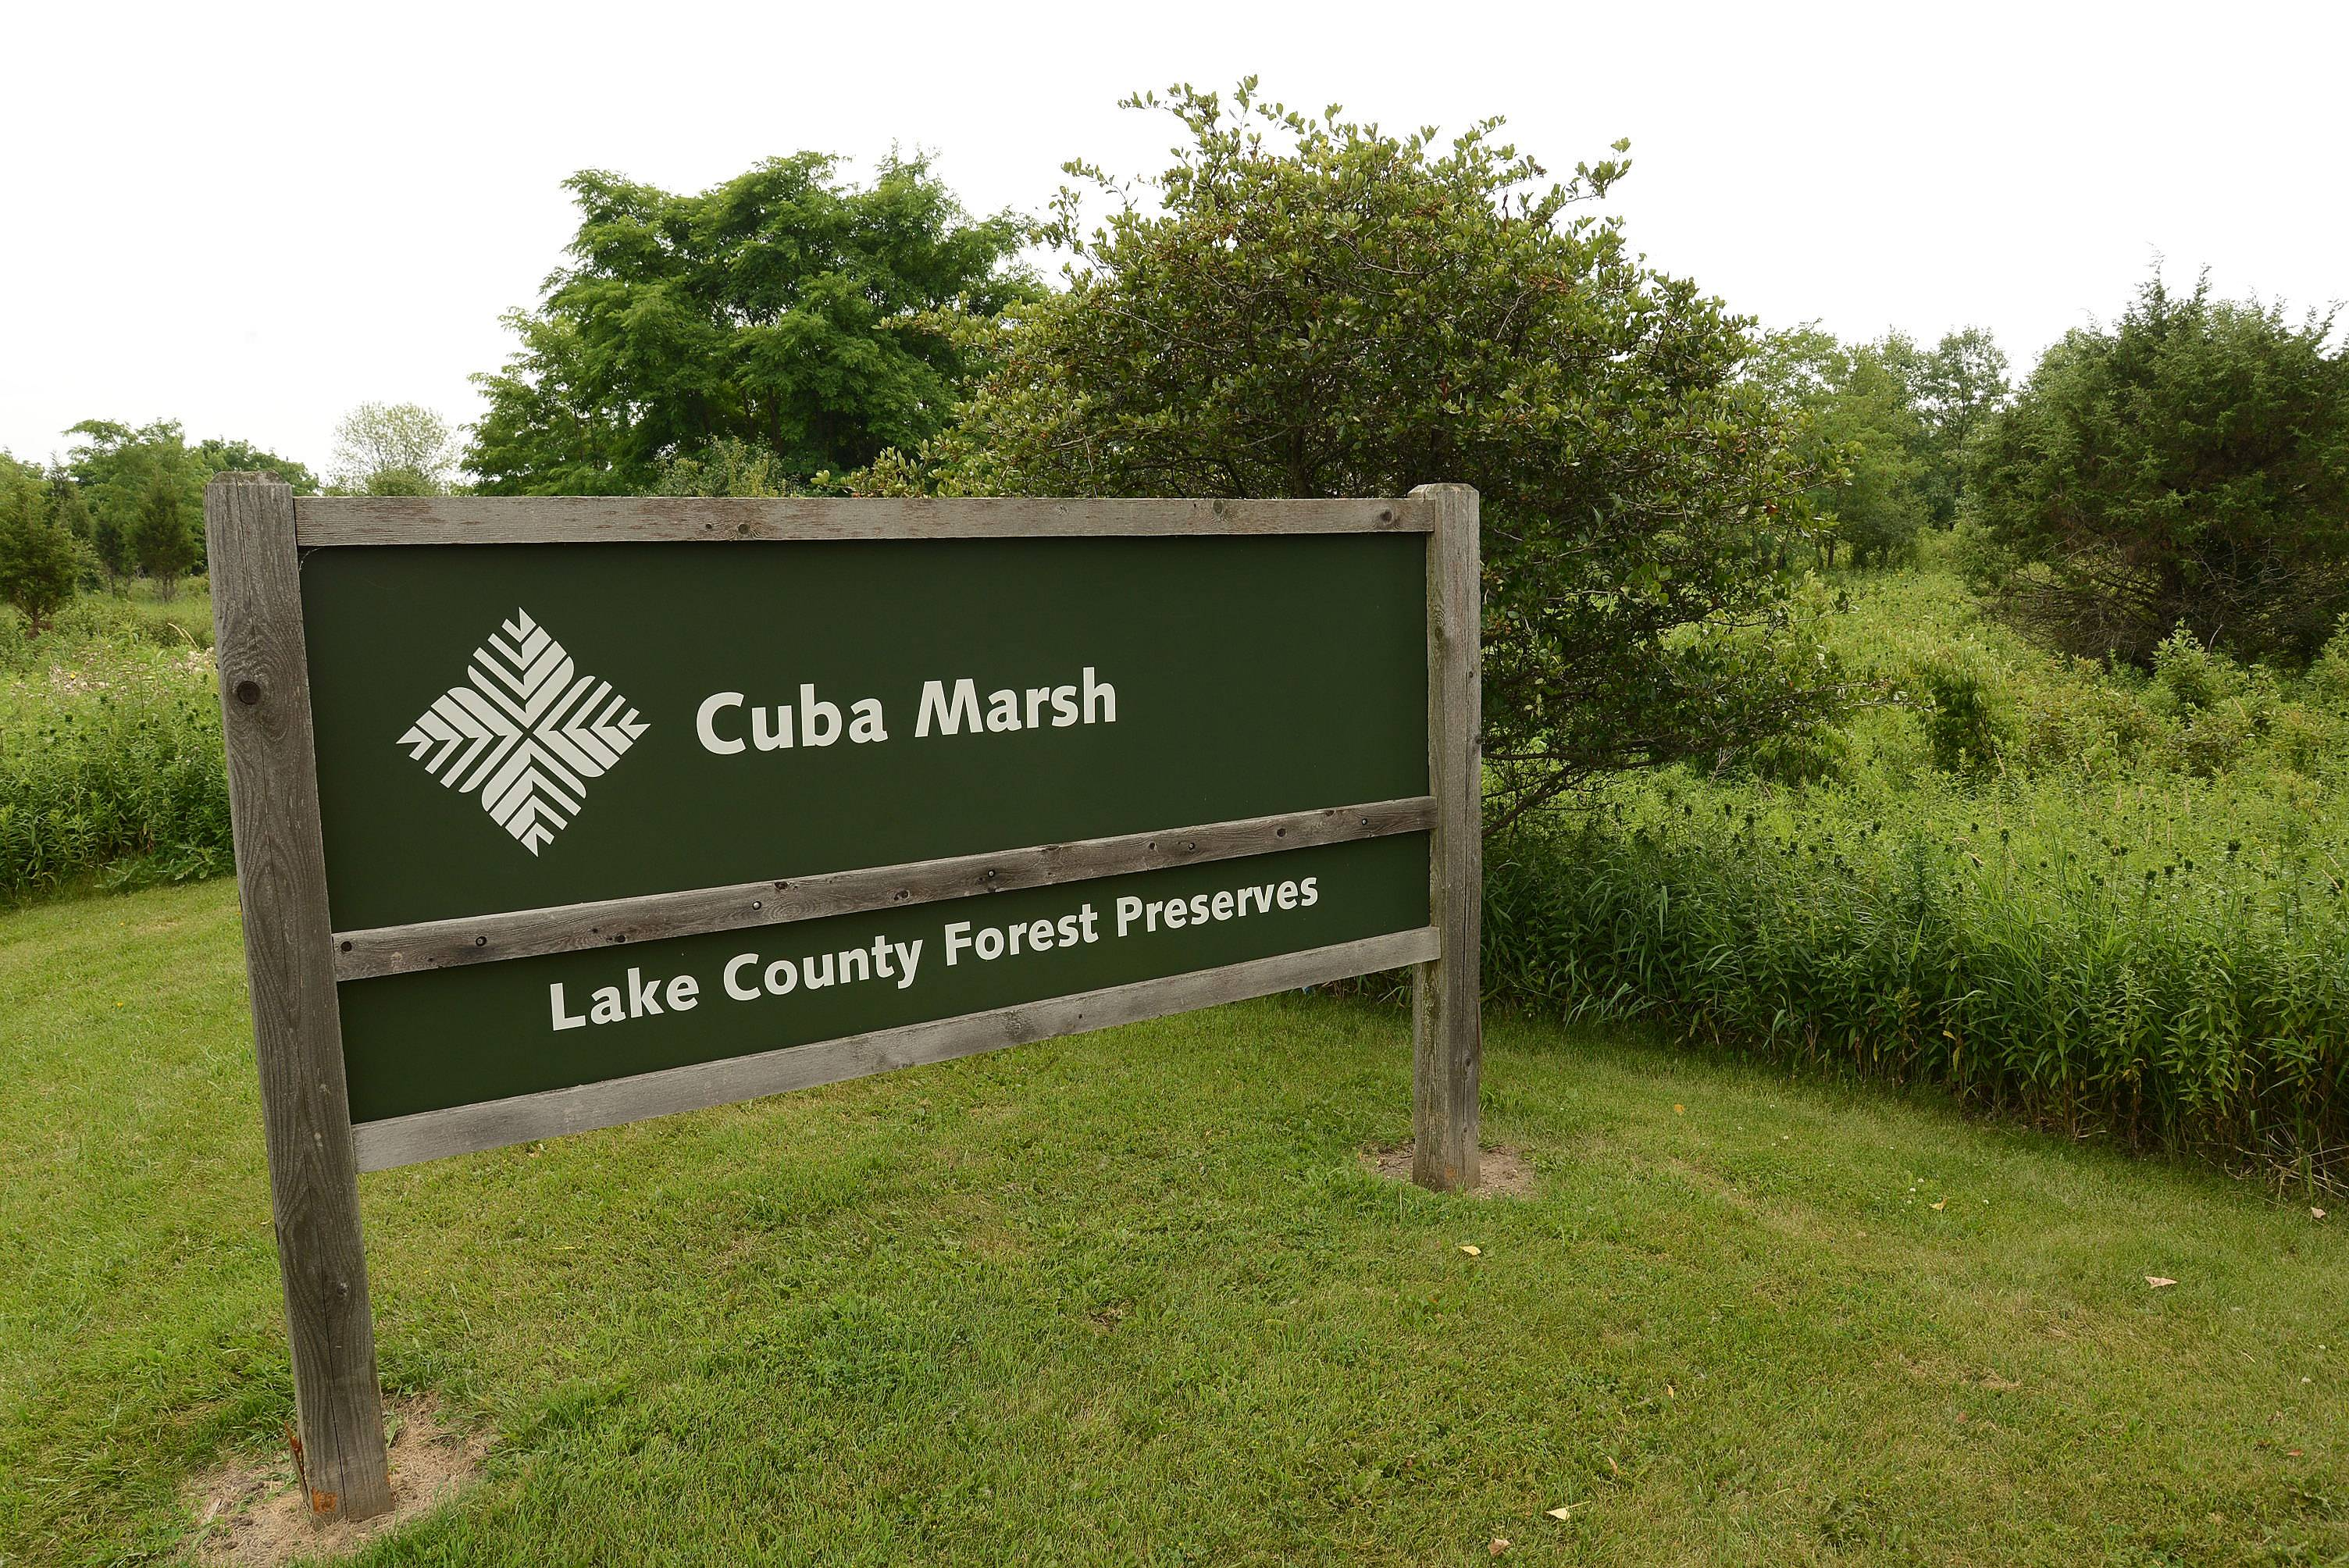 Bike and walking trails in Cuba Marsh just south of Chapel Hill are a nice amenity for residents.